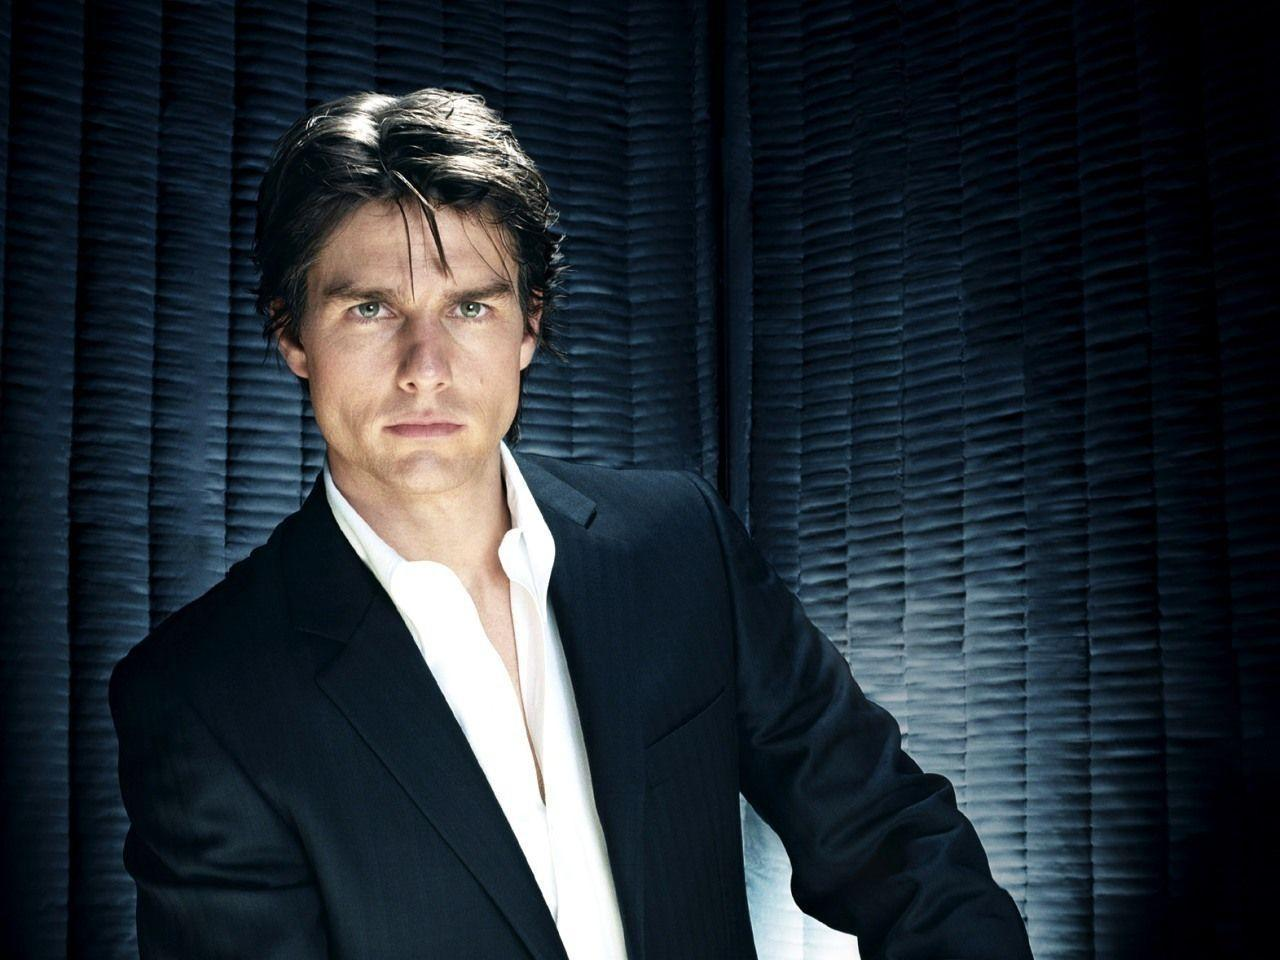 Tom Cruise Wallpapers HD